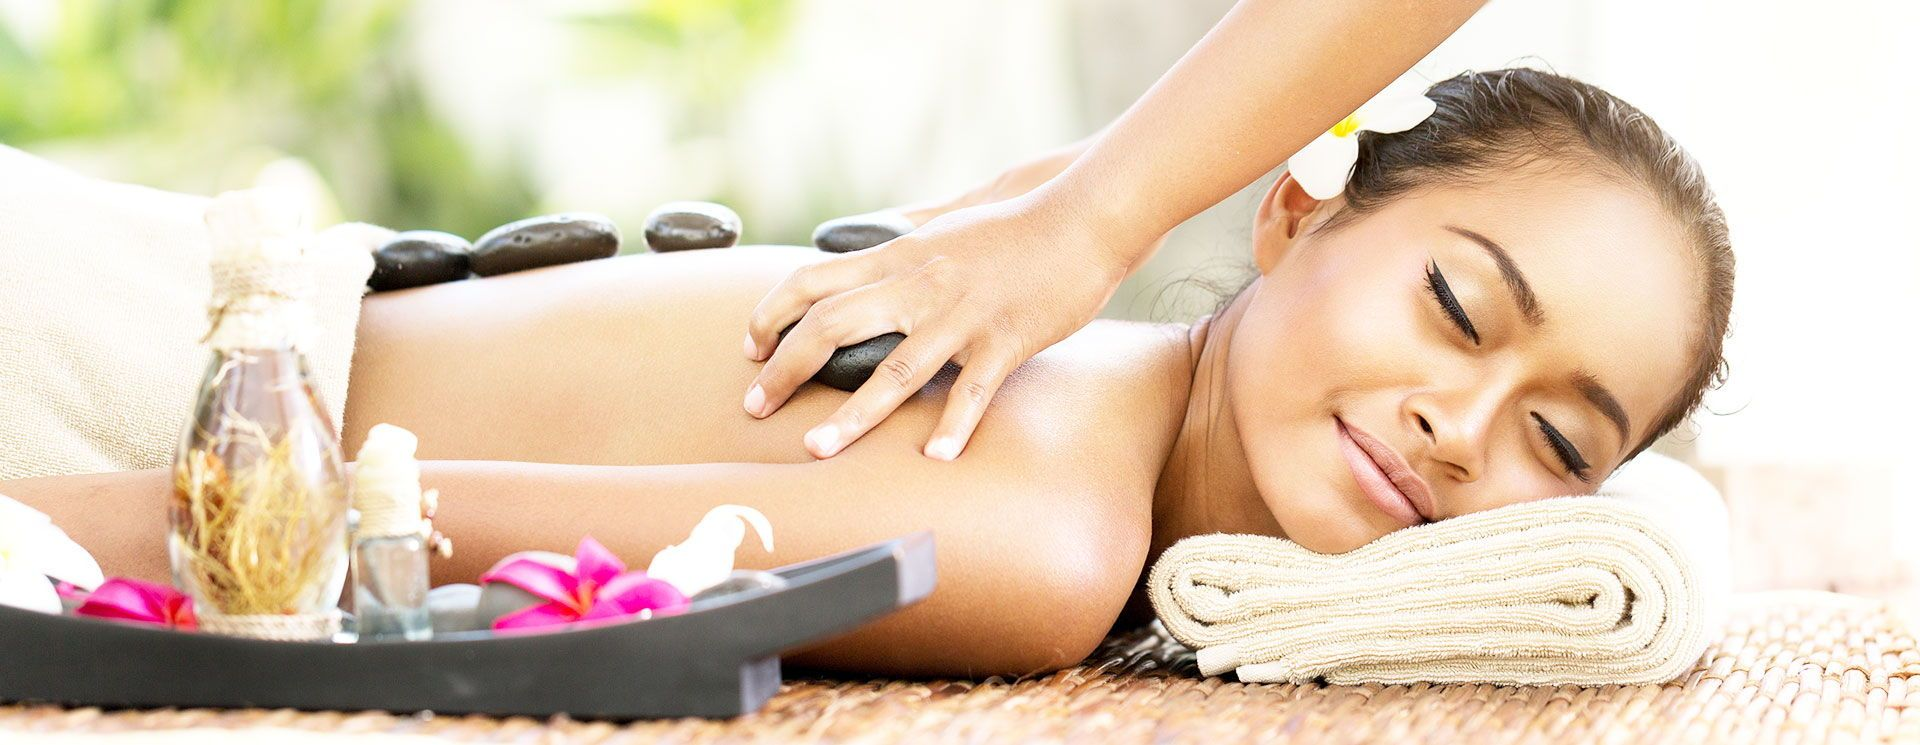 relaxed woman during a spa treatment